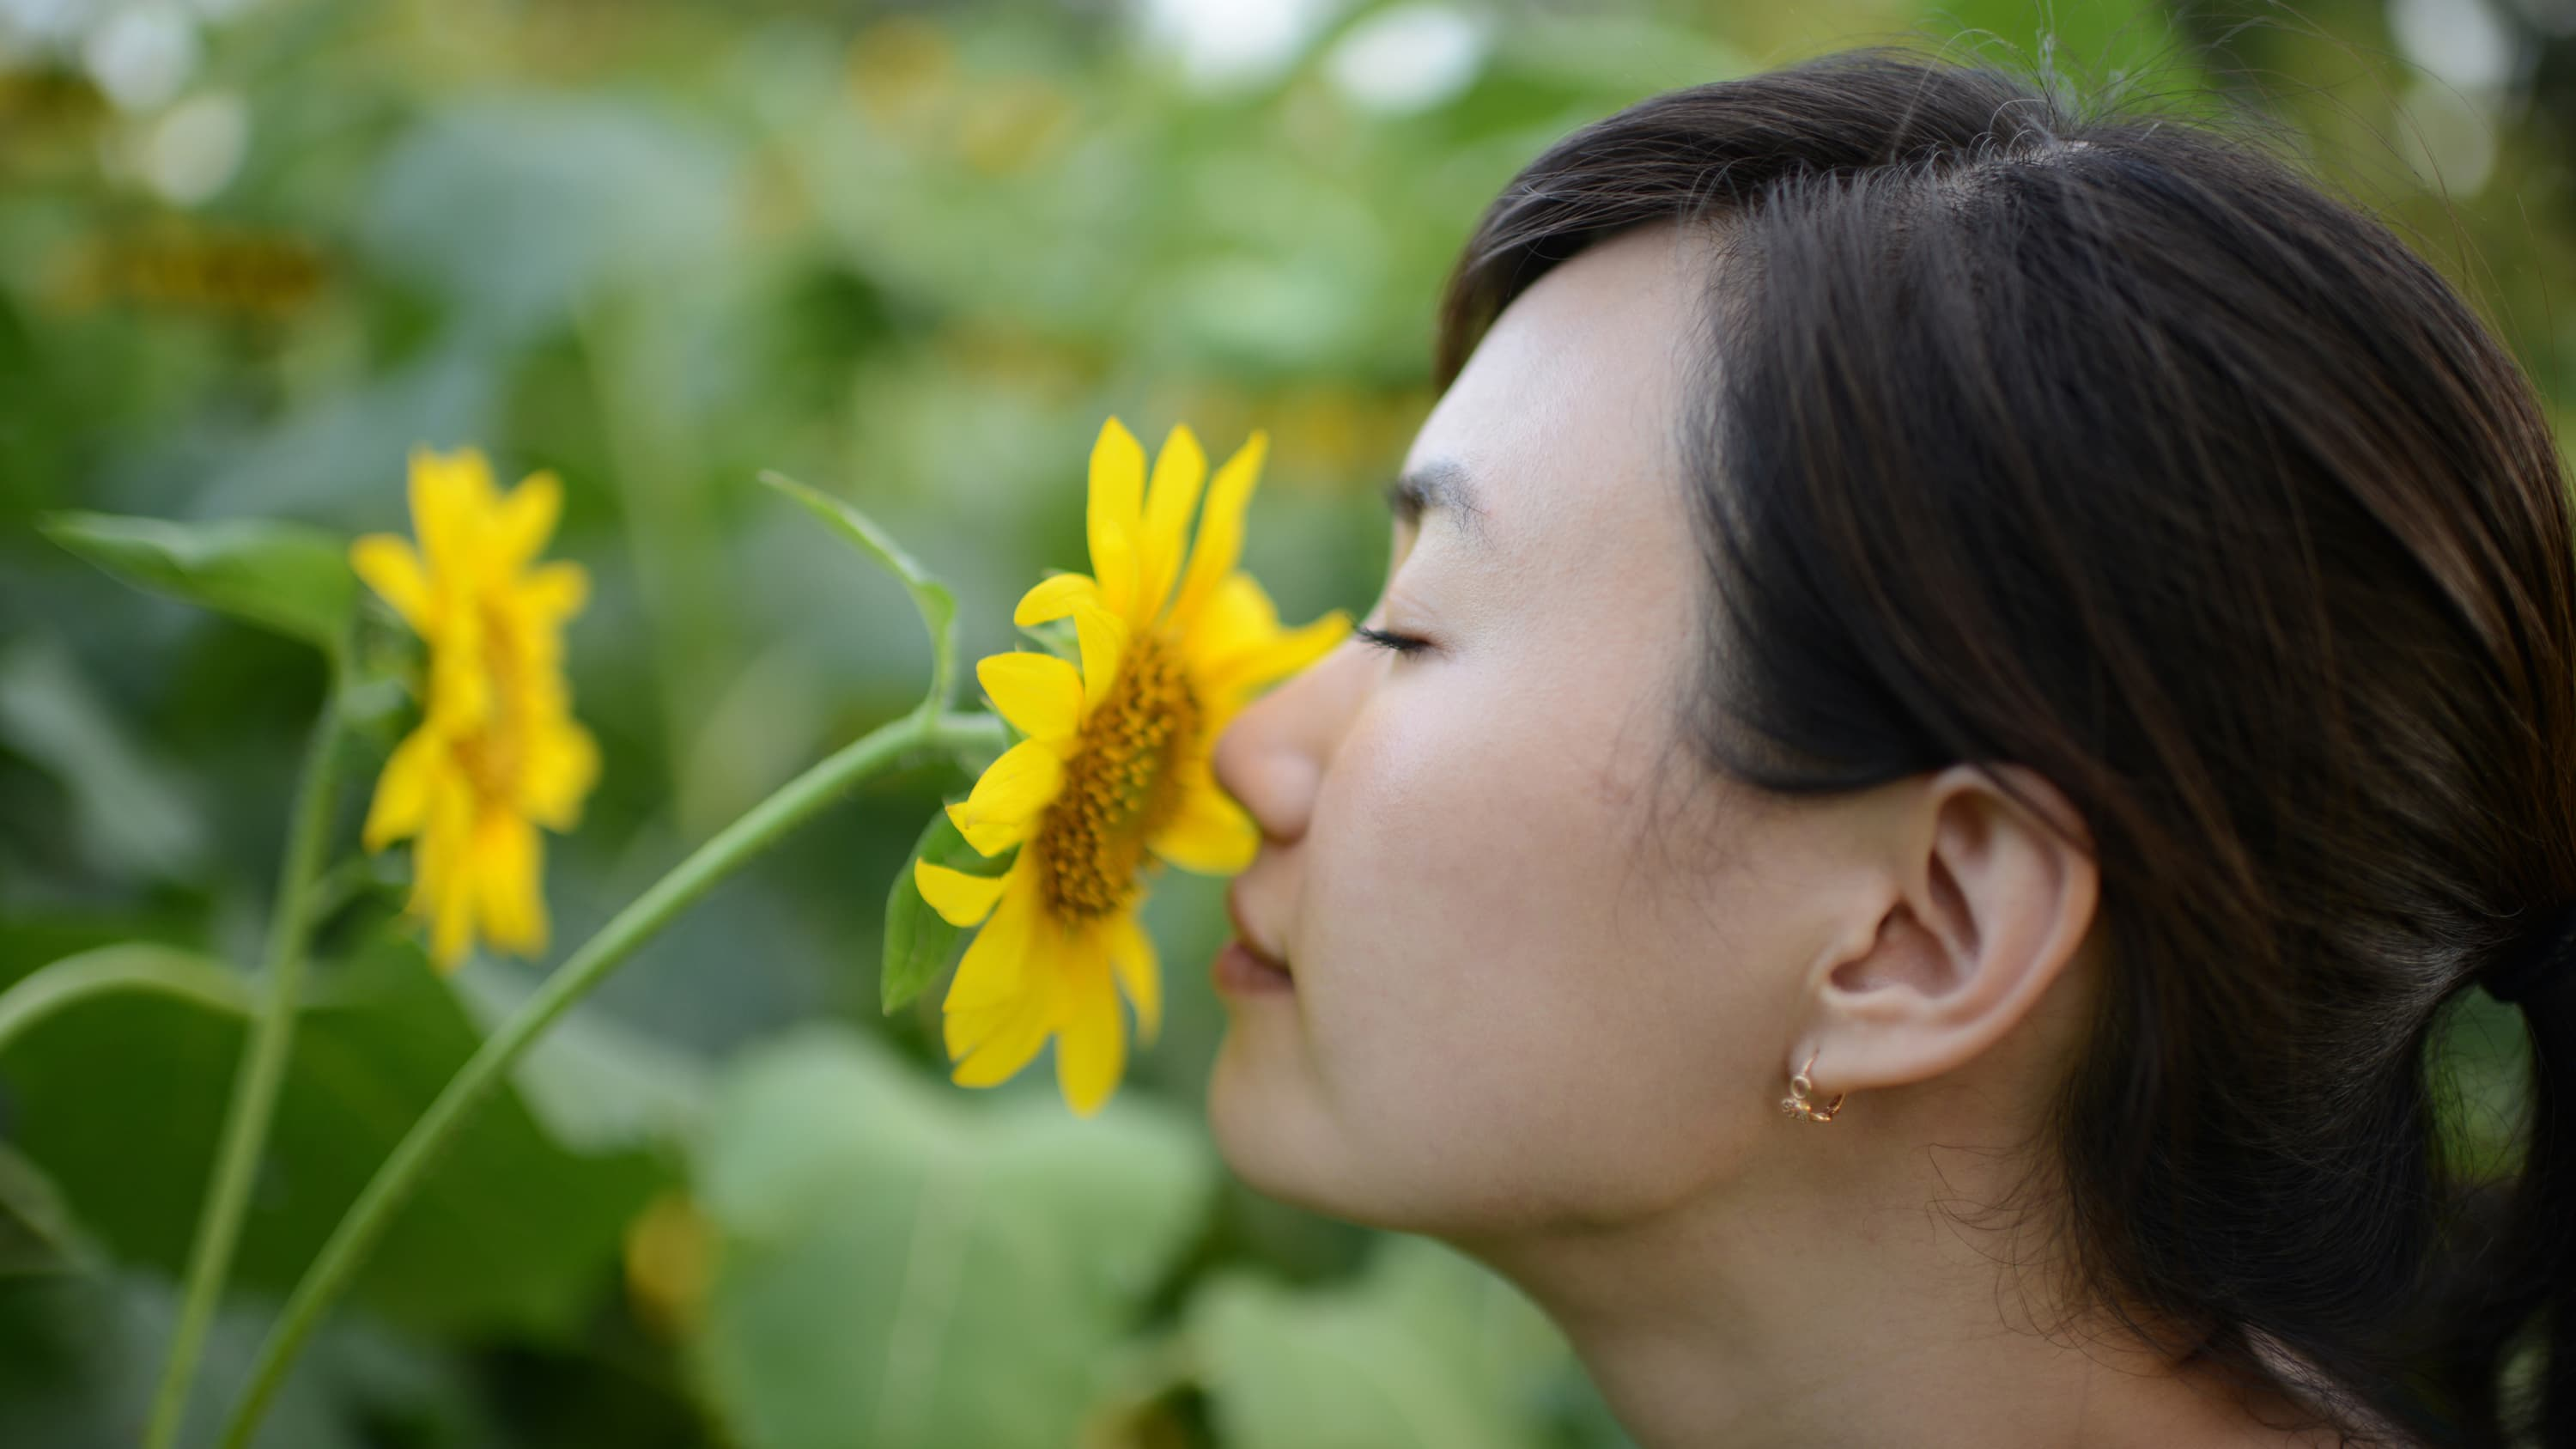 A woman who is trying to (but cannot) smell the flowers because of anosmia.